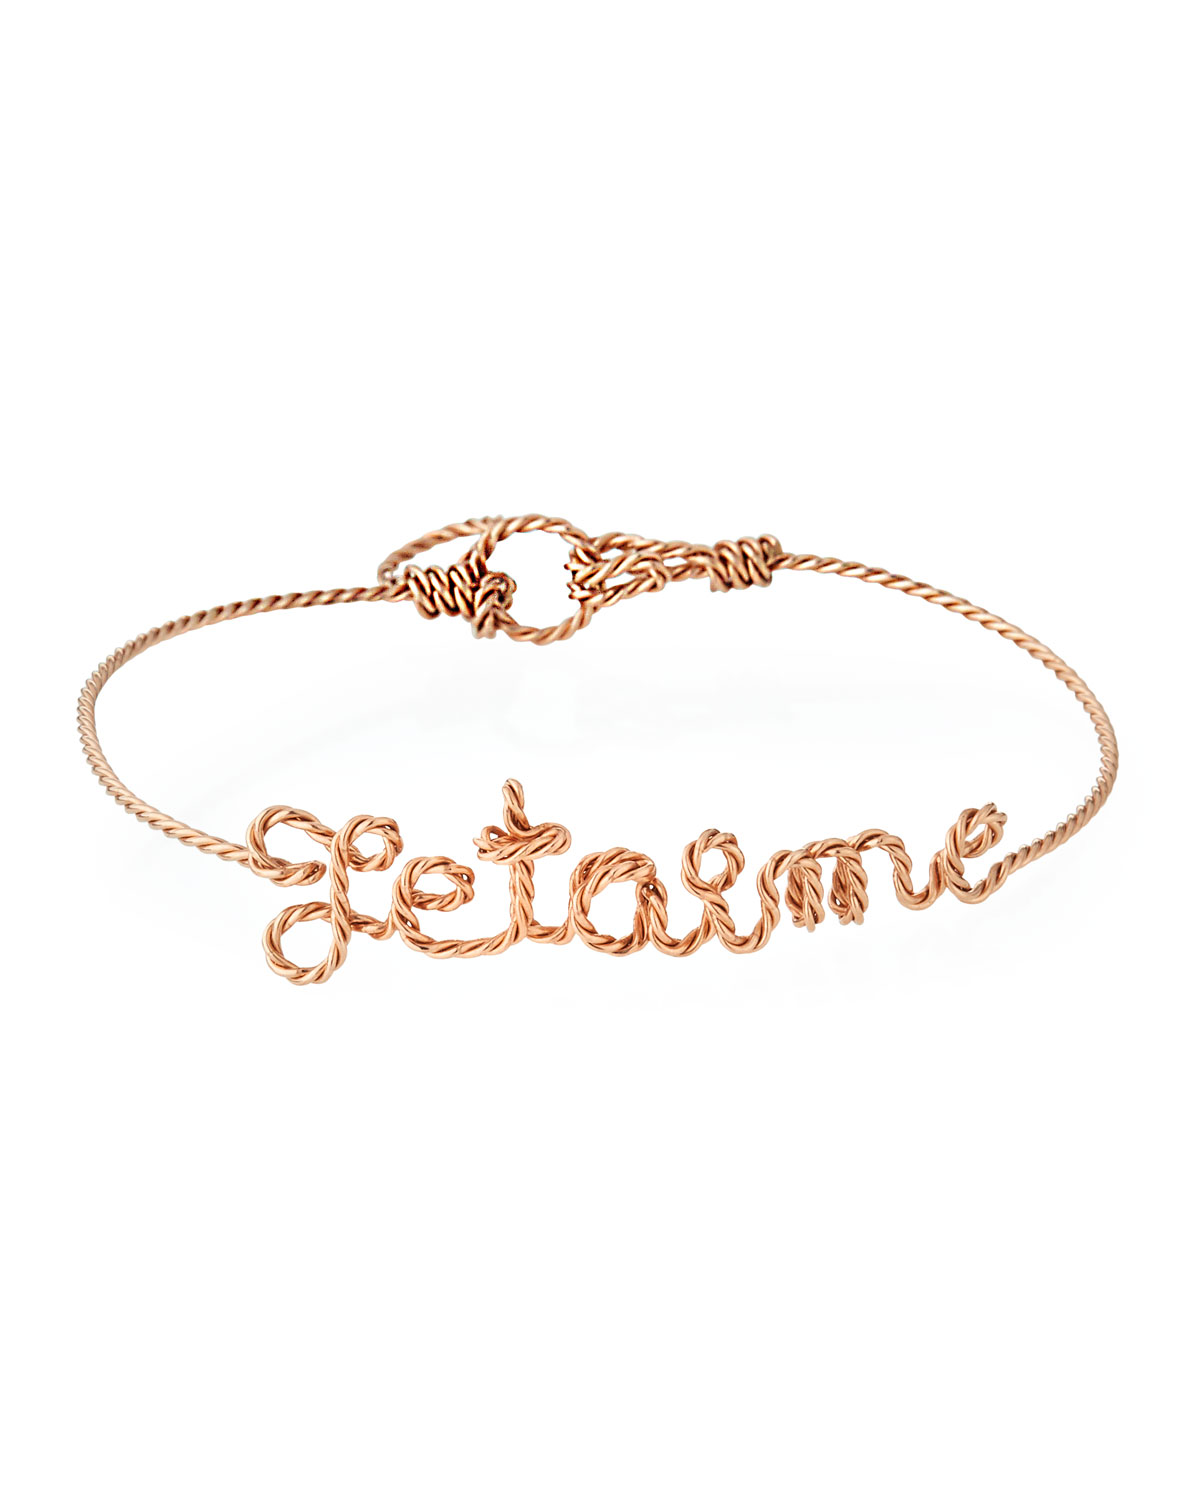 Atelier Paulin Personalized 10-Letter Wire Bracelet, Rose Gold Fill